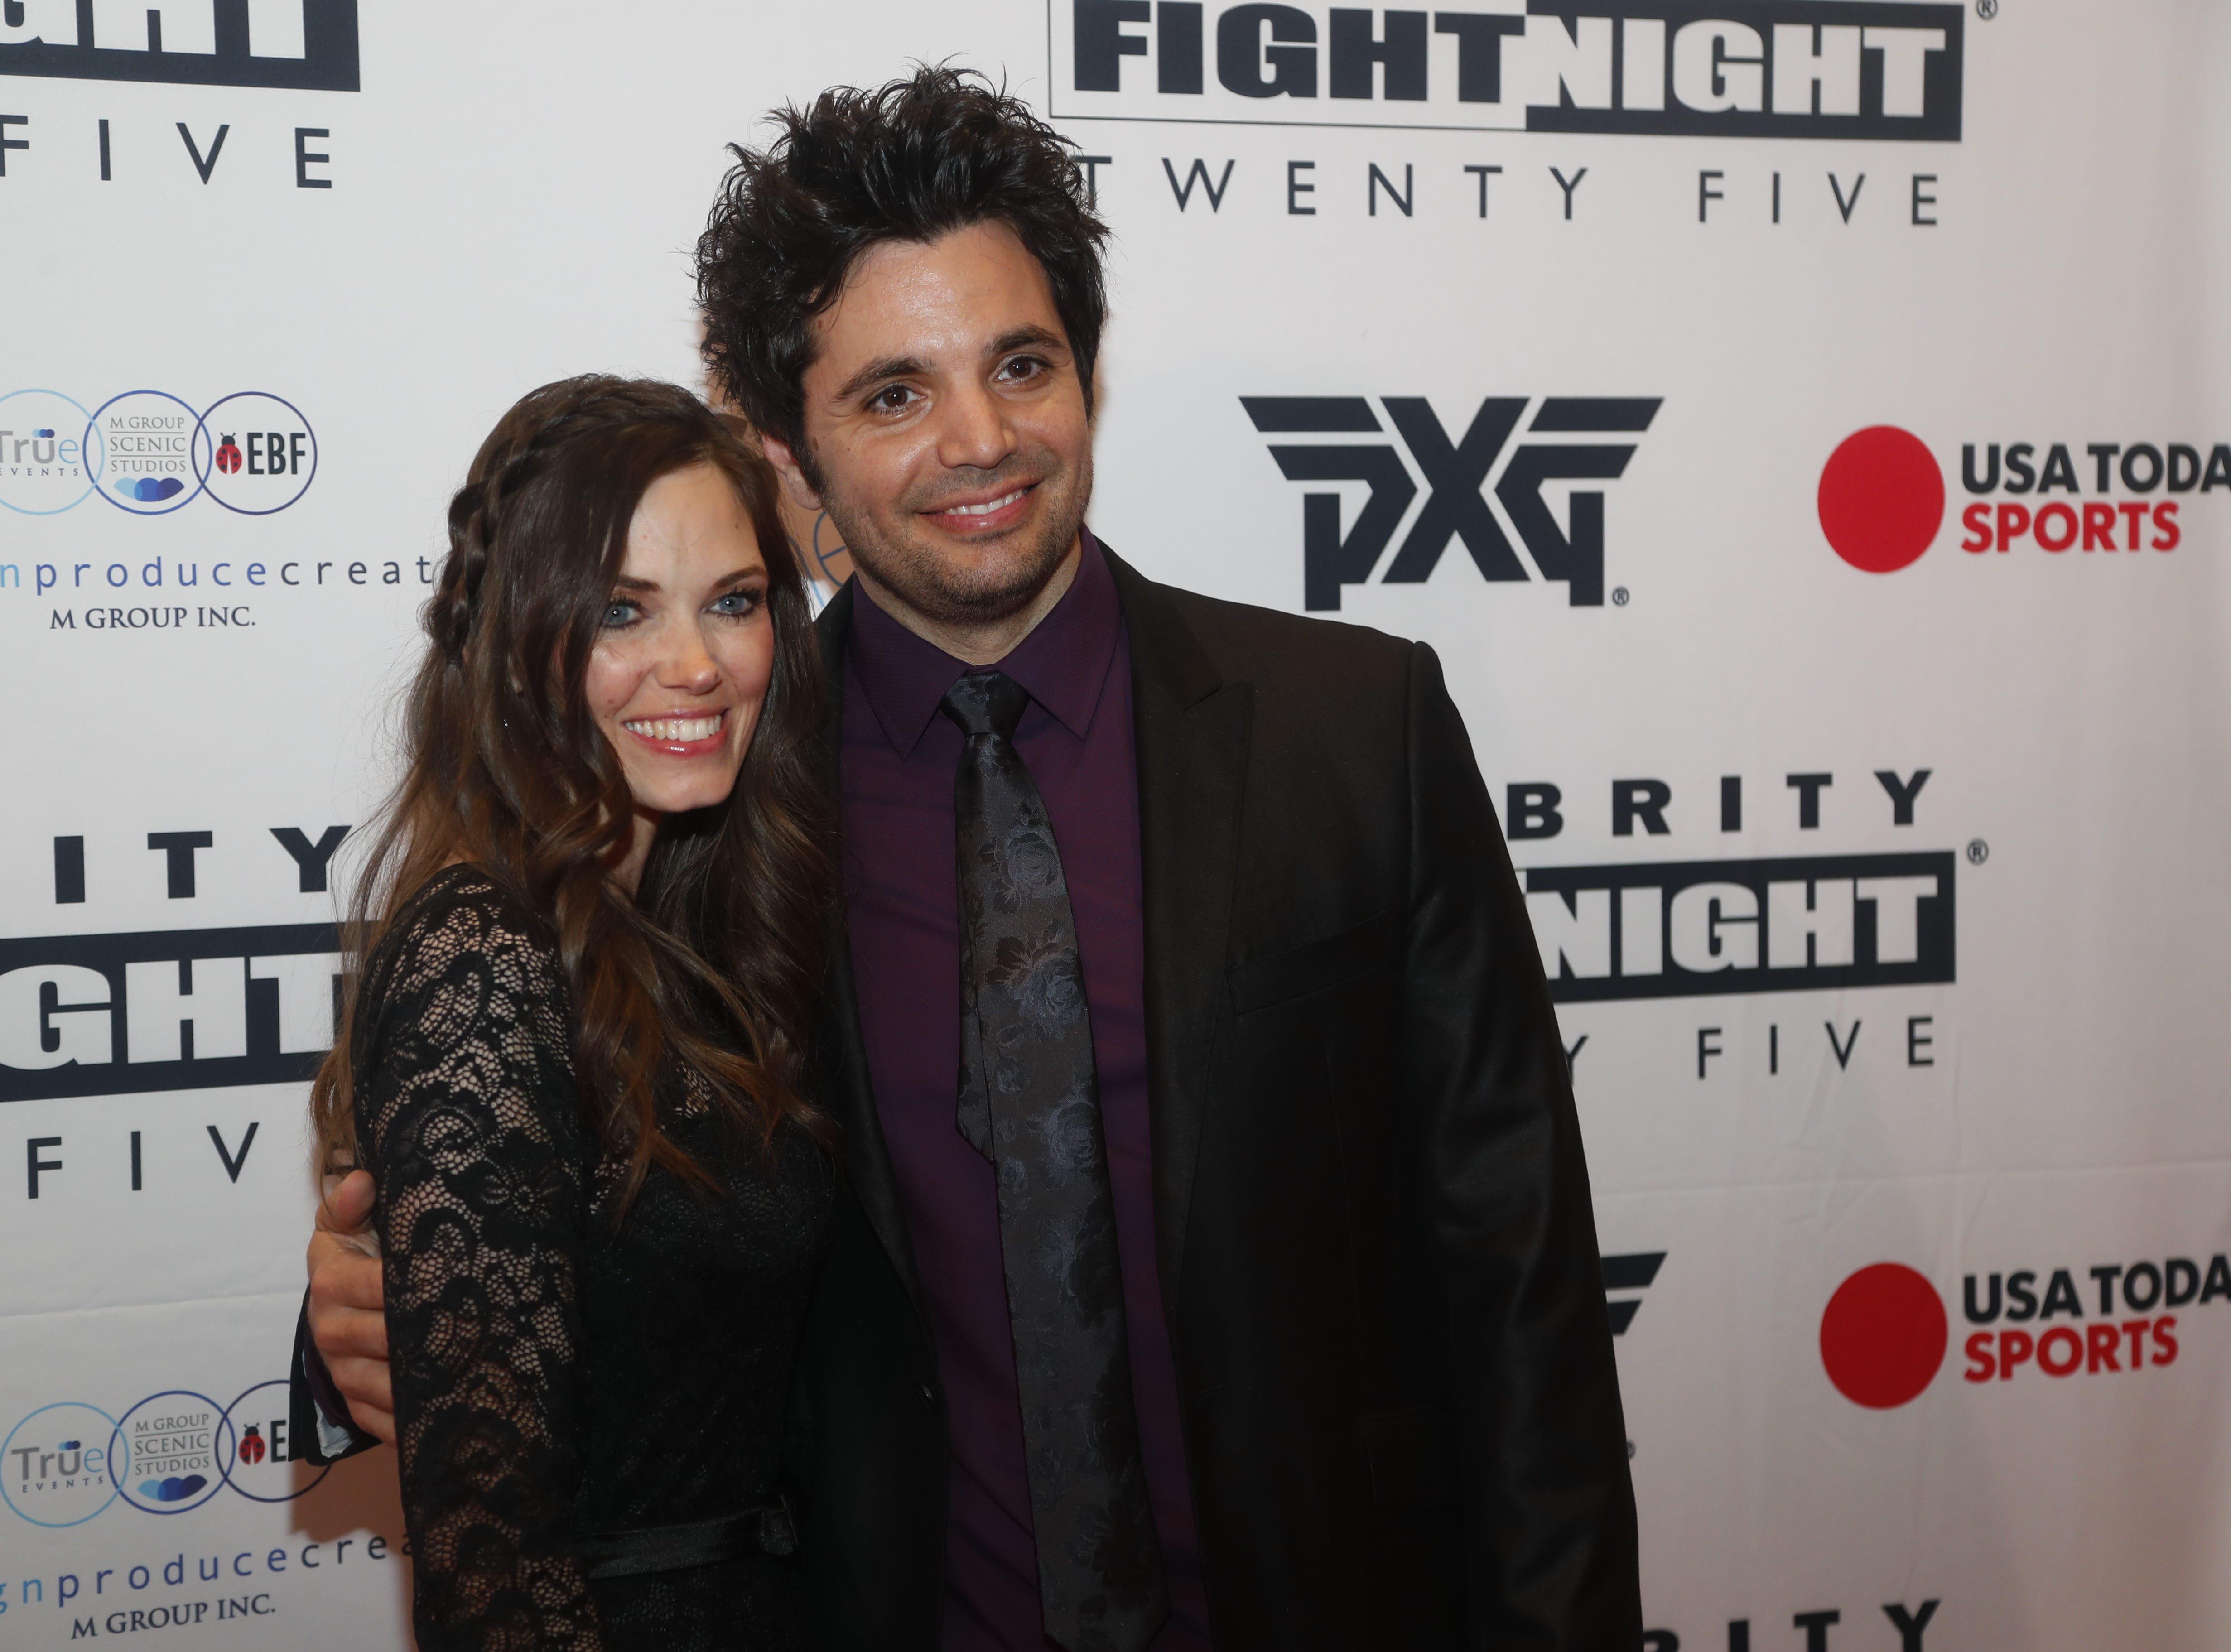 William Joseph poses for pictures with his date during the Celebrity Fight Night red carpet in Scottsdale, Ariz., on March 23, 2019.